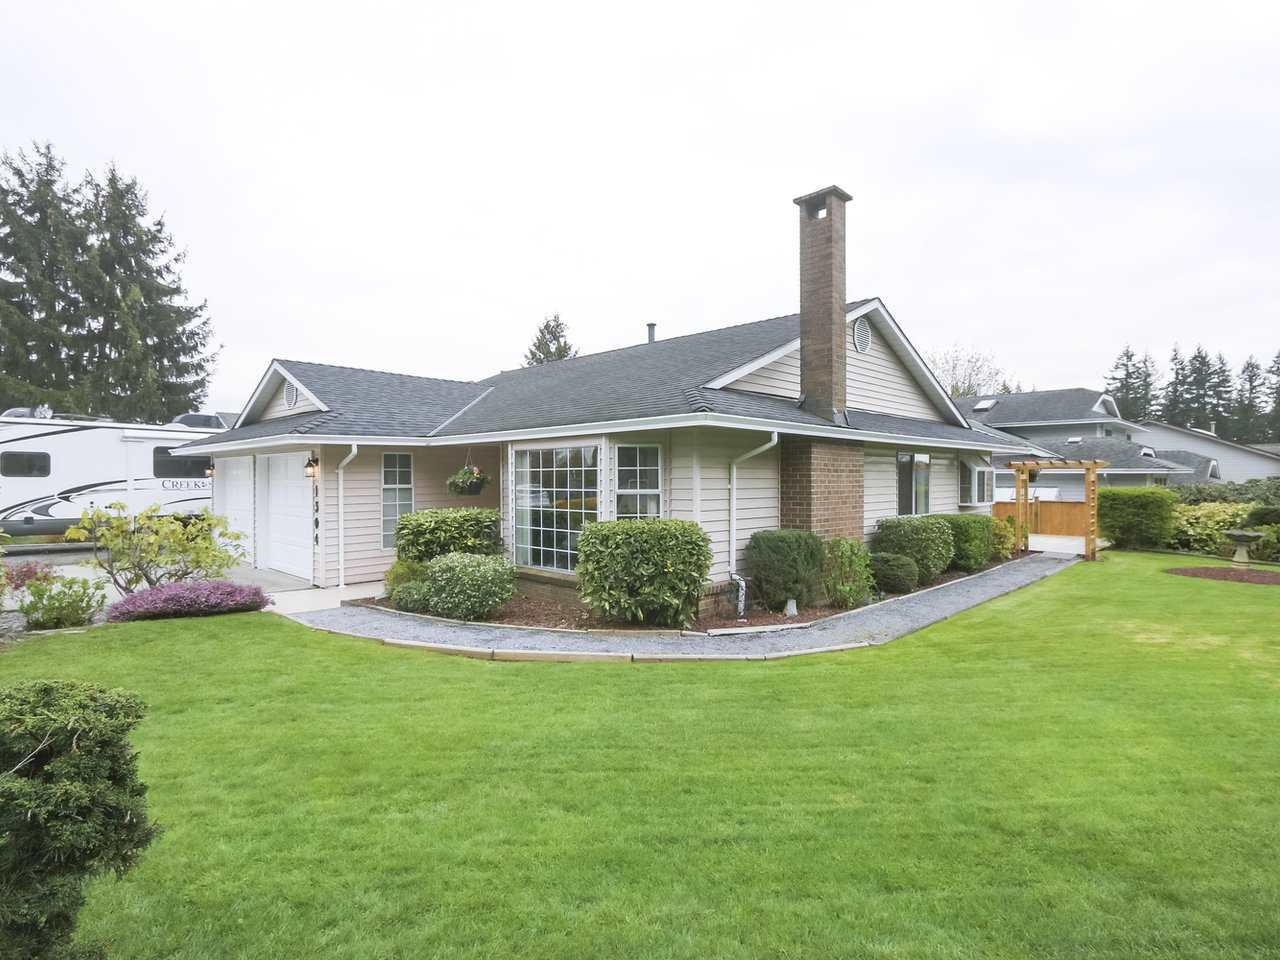 Main Photo: 1304 DURANT Drive in Coquitlam: Scott Creek House for sale : MLS®# R2361333